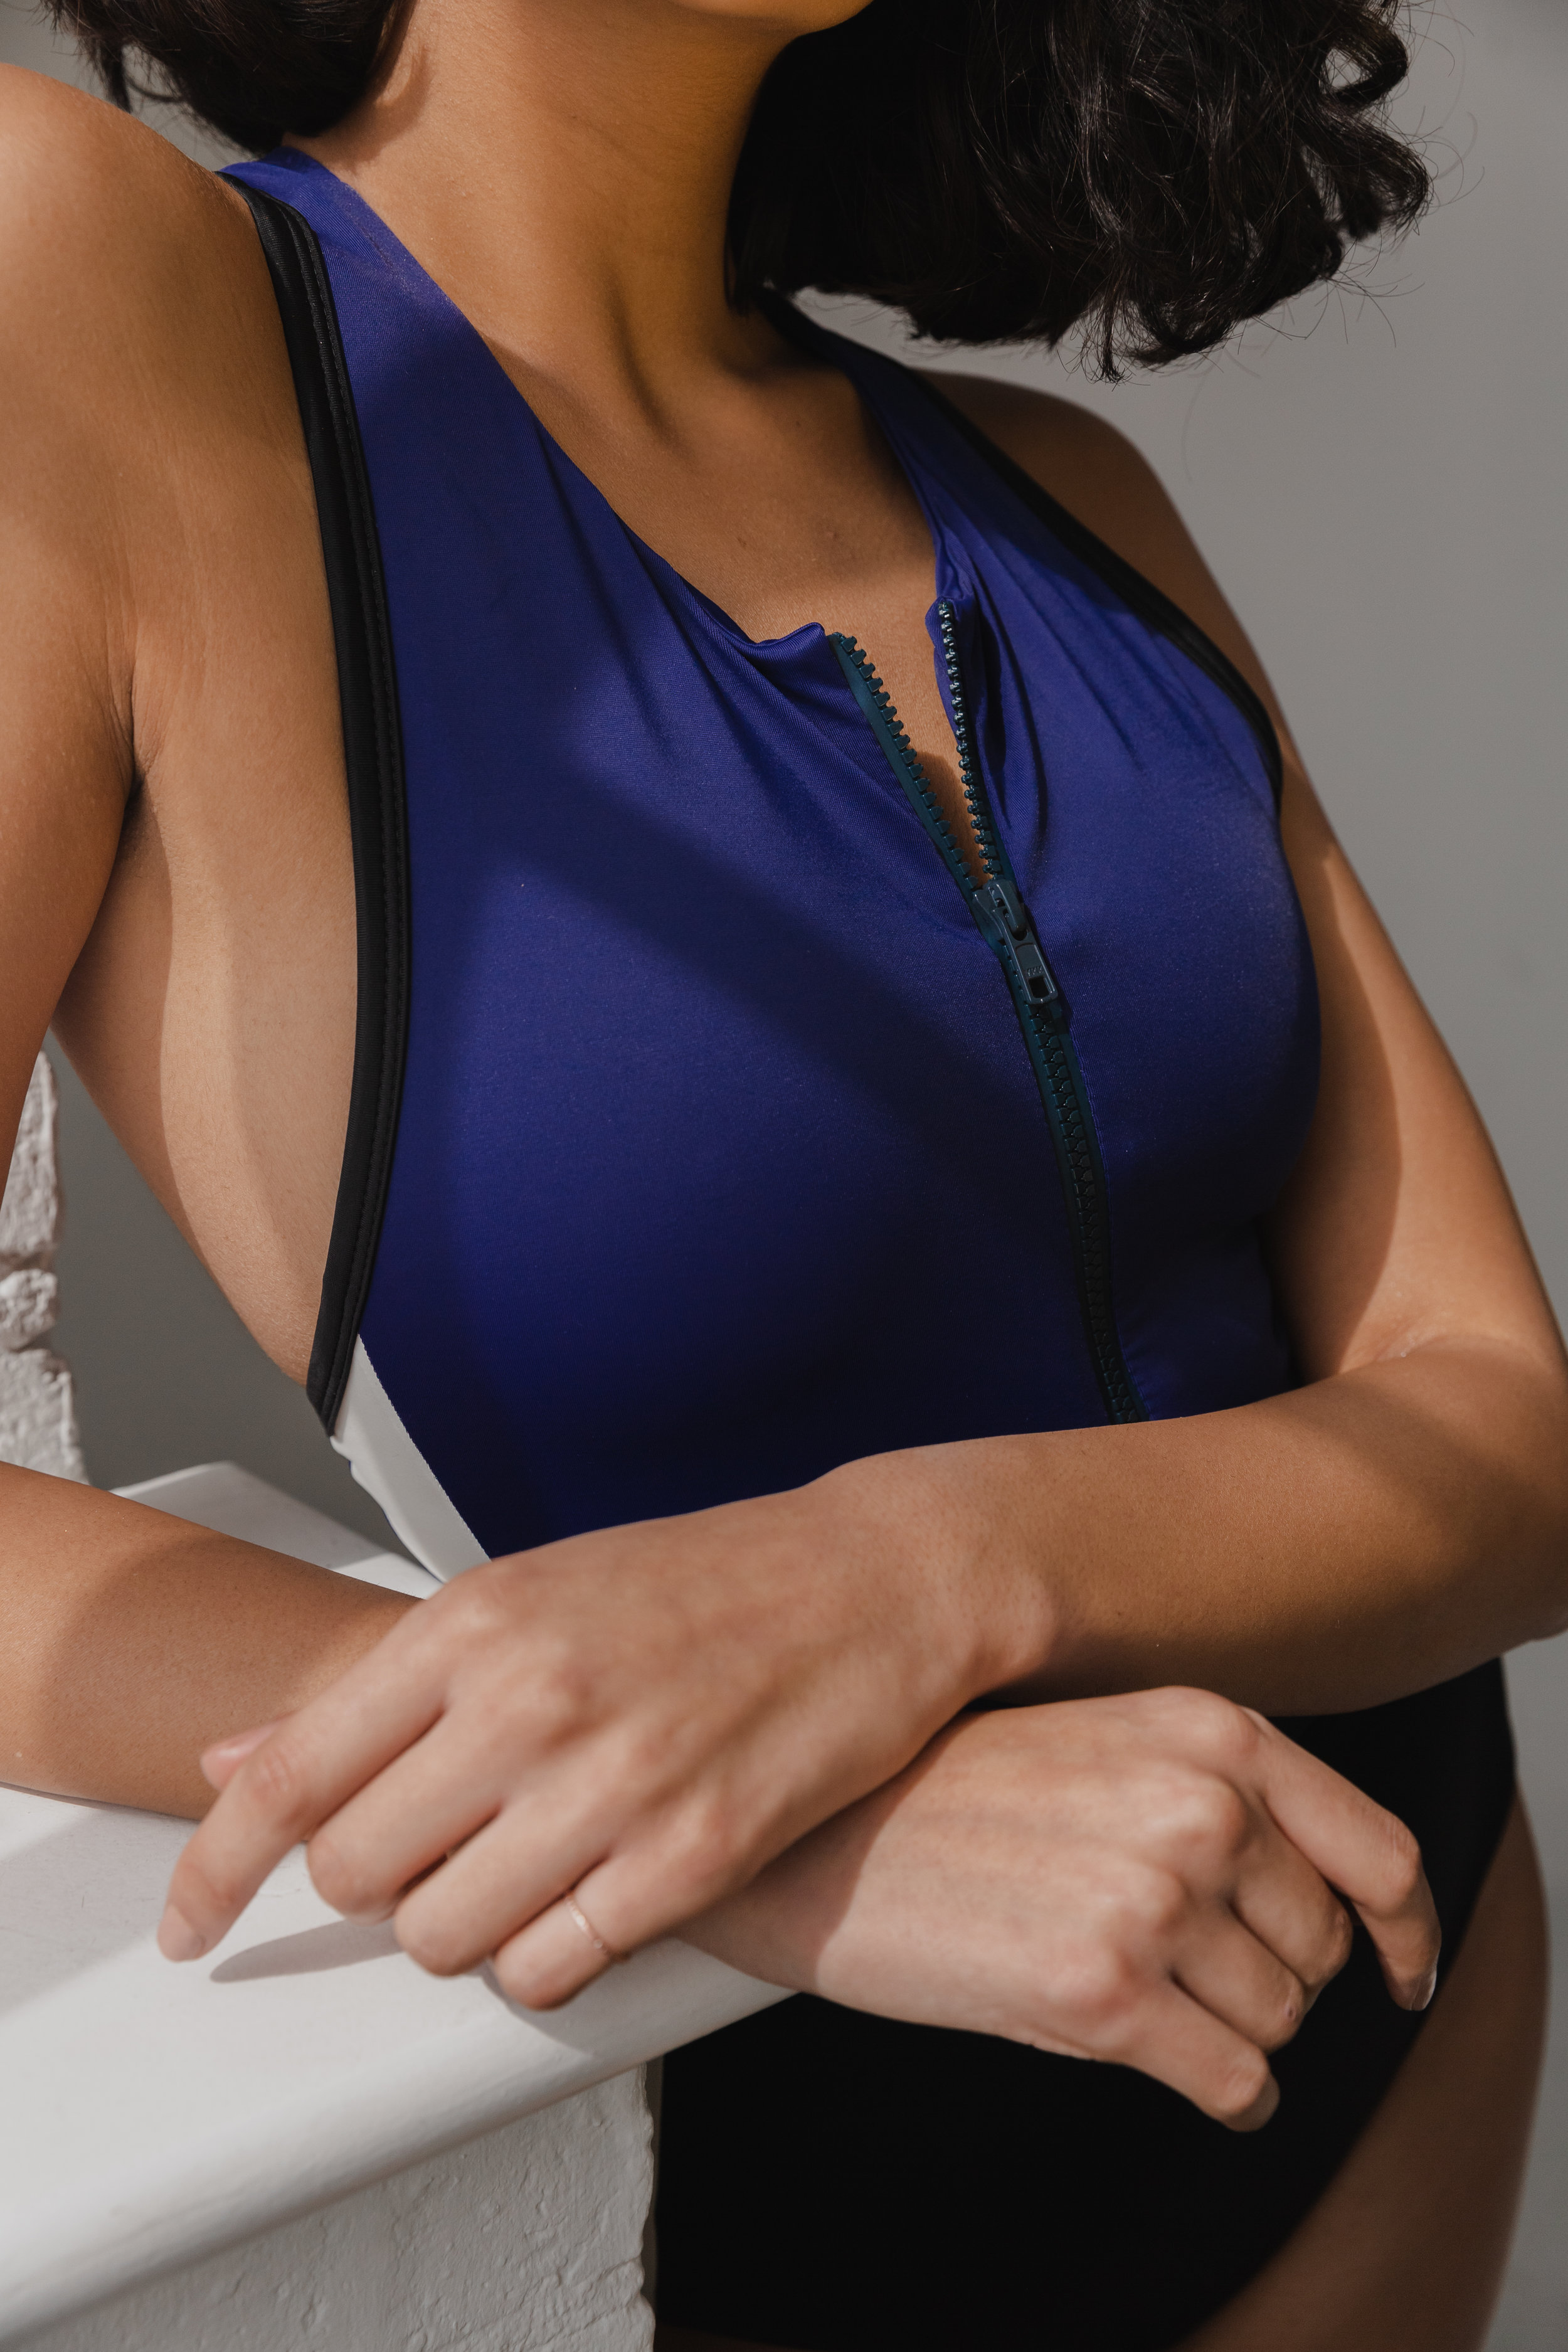 ODYSSEY ONEPIECE - Designed by Zanna and Natalie to be flattering, feminine and functional. Coloured panels provide sculpting and the raised sporty neckline gives a higher level of support, perfect for more active pursuits. Double lining provides the highest quality and the premium zip allows the piece to be worn with ease.